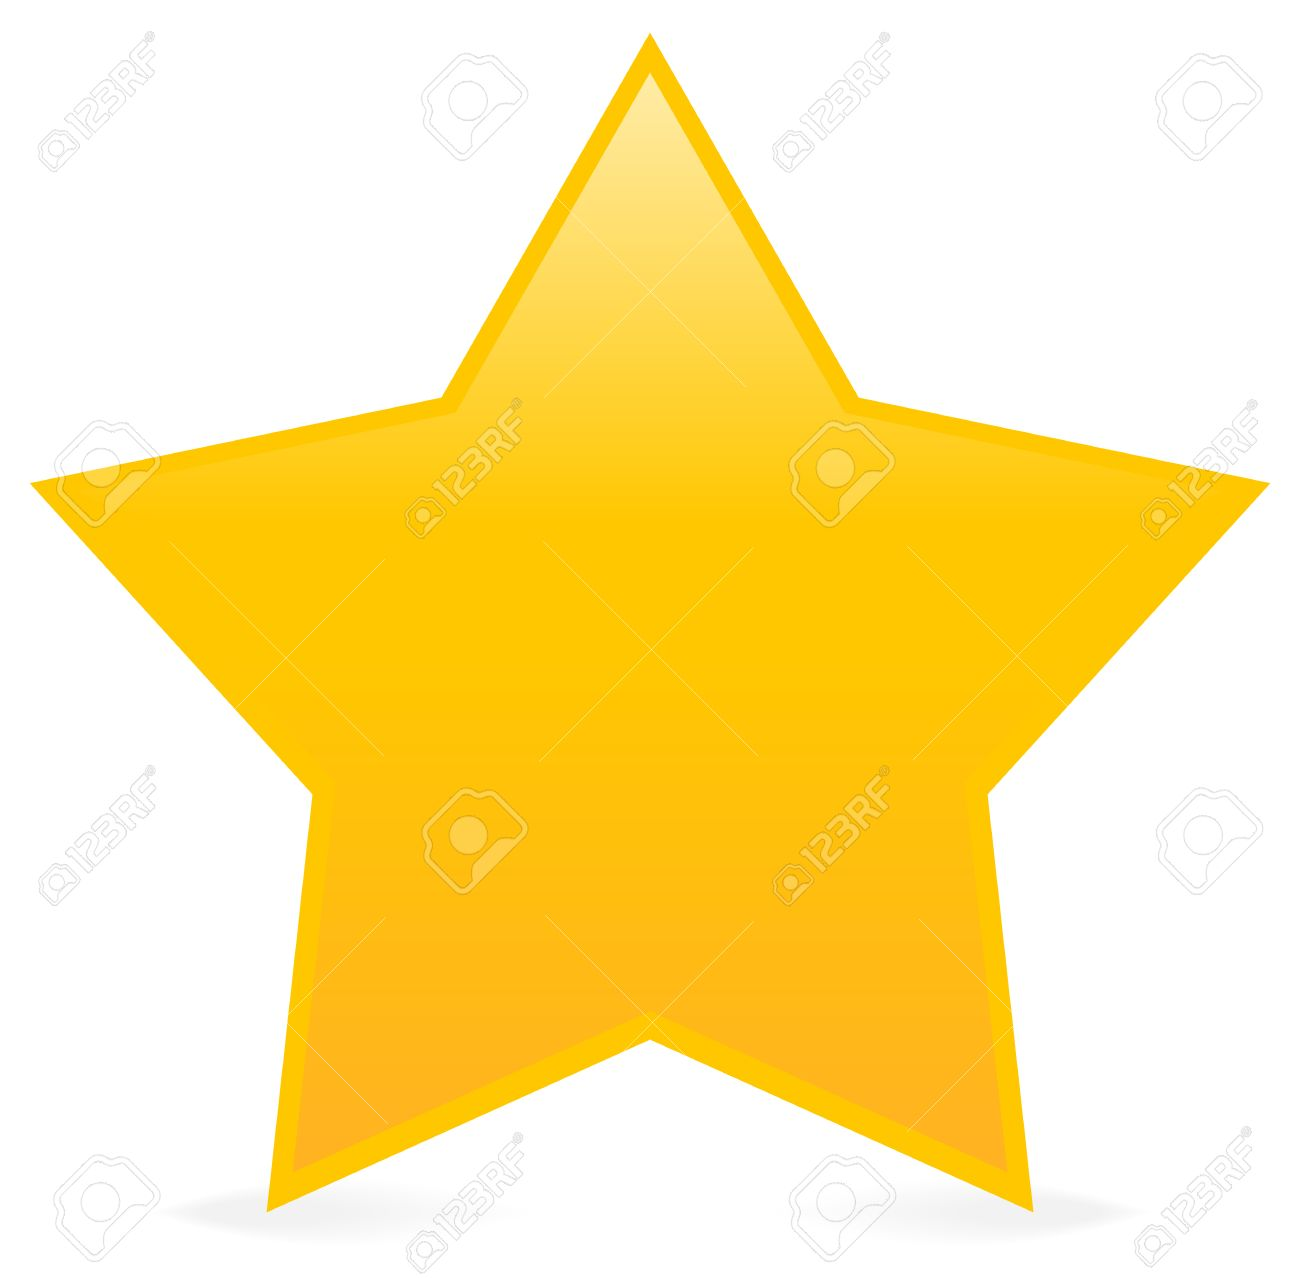 yellow star isolated on white simply star clip art star icon rh 123rf com  yellow star clip art free